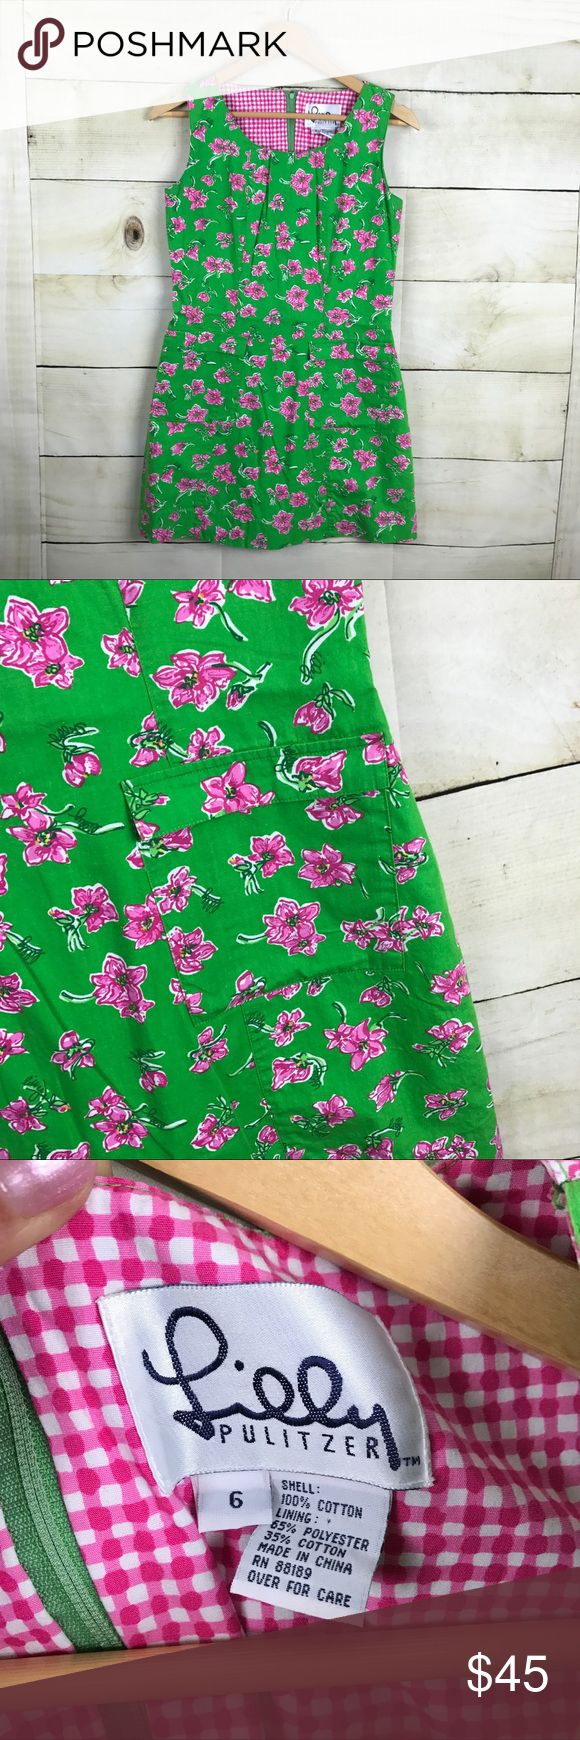 "Vintage Lilly Pulitzer Green Floral Mini Dress Adorable vintage Lilly Pulitzer mini sheath dress. Size 6. Green with pink flowers and hidden ""Lilly"" print. Two from flap pockets. Back zipper closure. Underarm-underarm 16.5"" Length 31"". 100% Cotton. Lined. Lilly Pulitzer Dresses Mini"